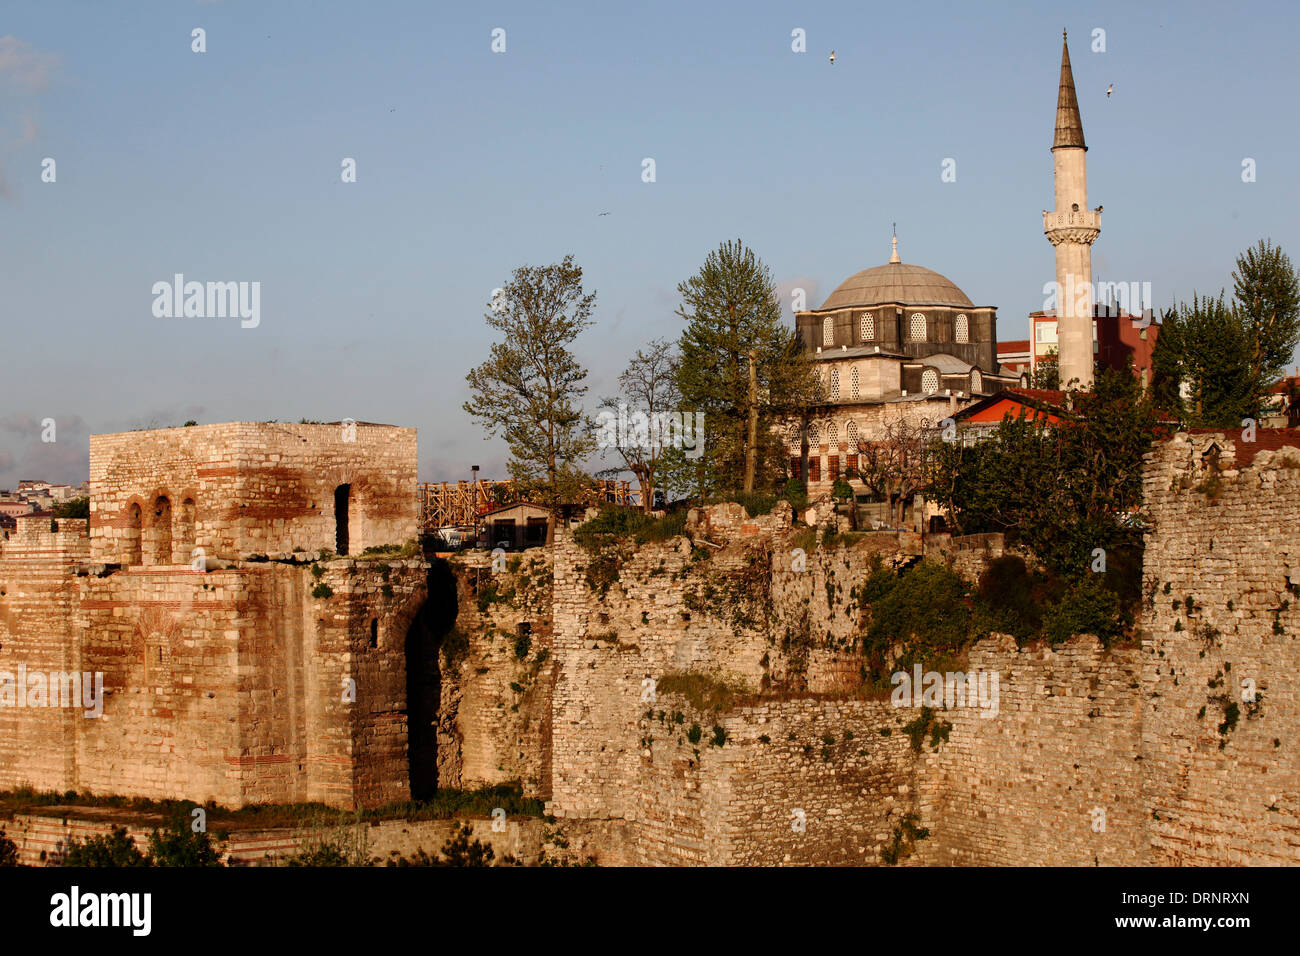 Historical Istanbul Fortress Turkey - Stock Image